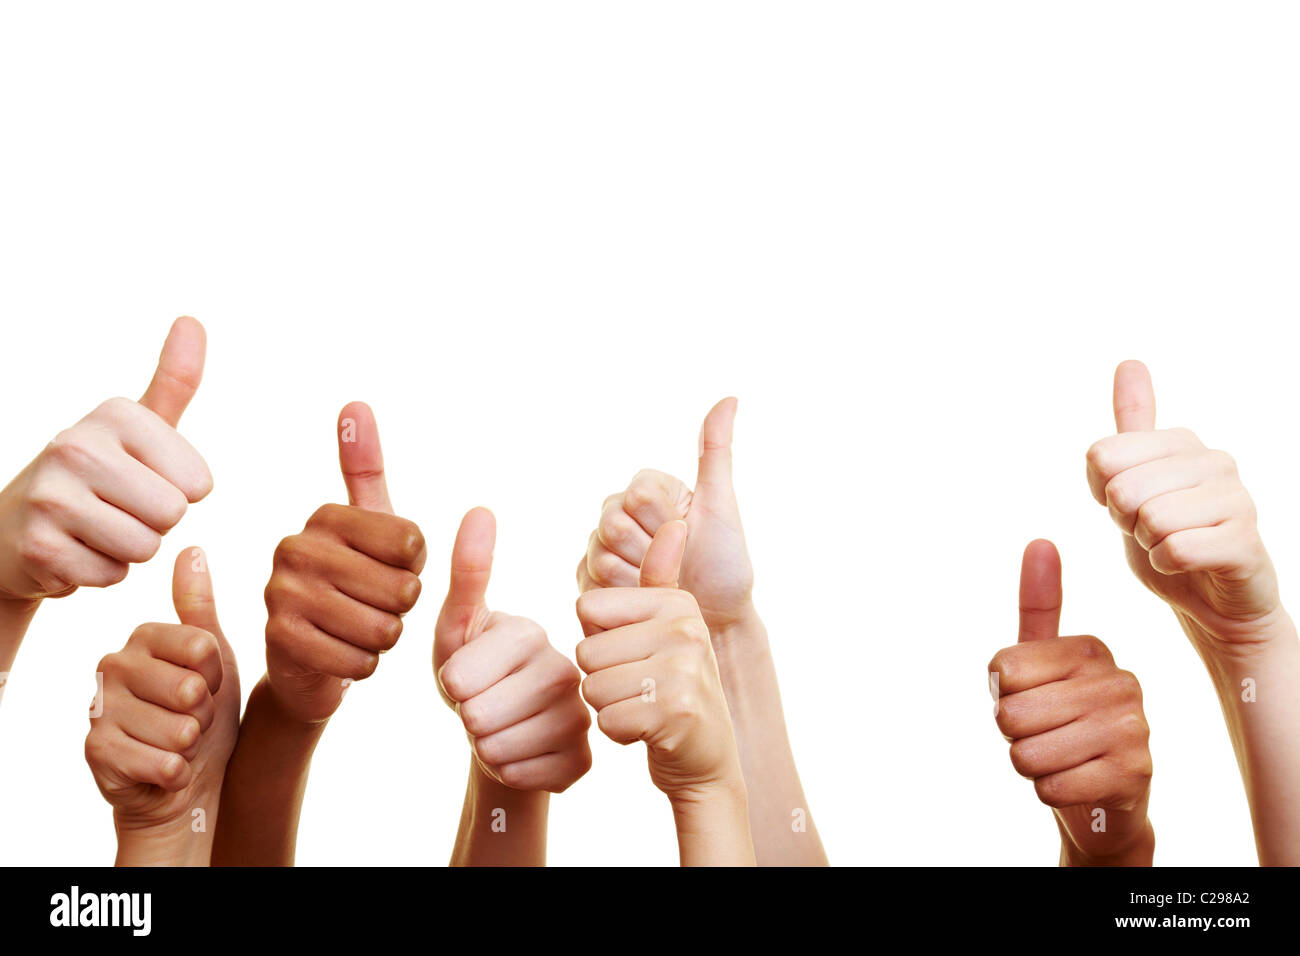 Many thumbs up - Stock Image